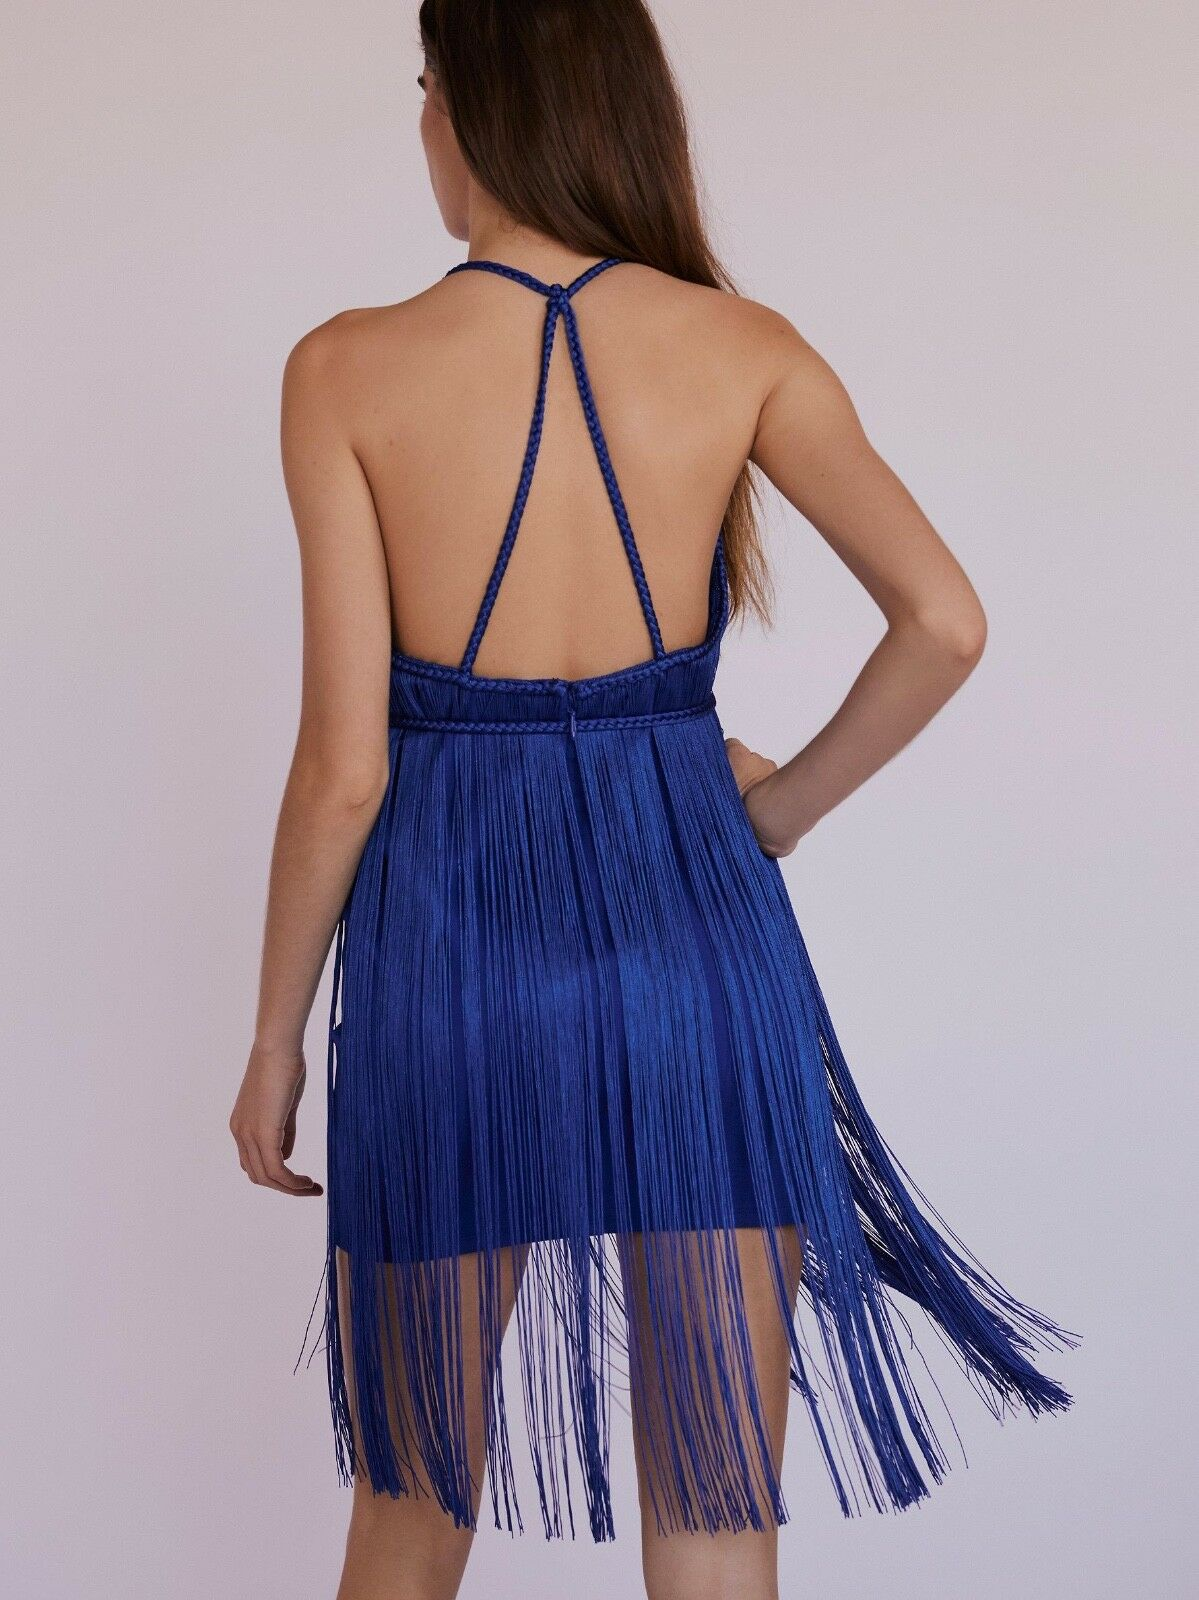 NEW Free People Fringe Element Bodycon Dress Dress Dress size Small MSRP   350 ccdc00